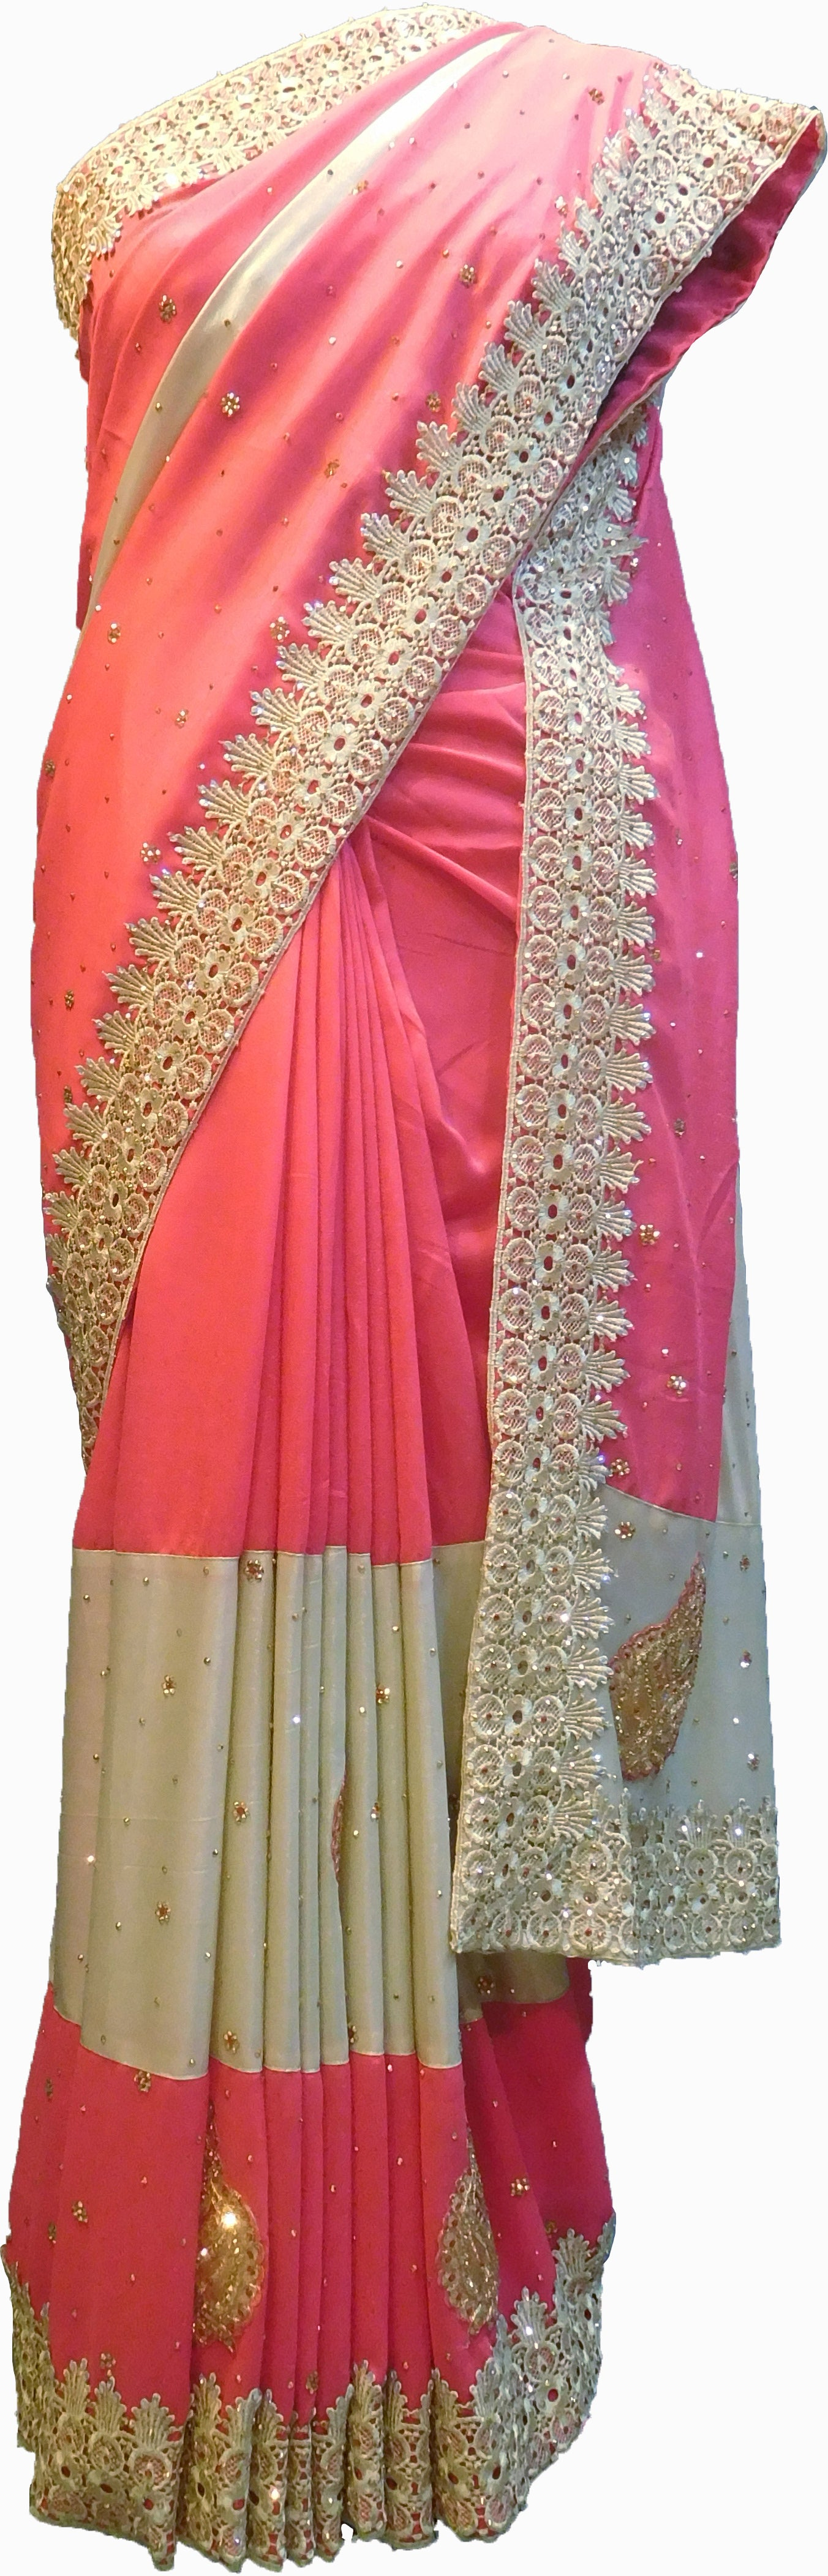 SMSAREE Pink & Cream Designer Wedding Partywear Georgette Cutdana Zari Thread & Stone Hand Embroidery Work Bridal Saree Sari With Blouse Piece F179